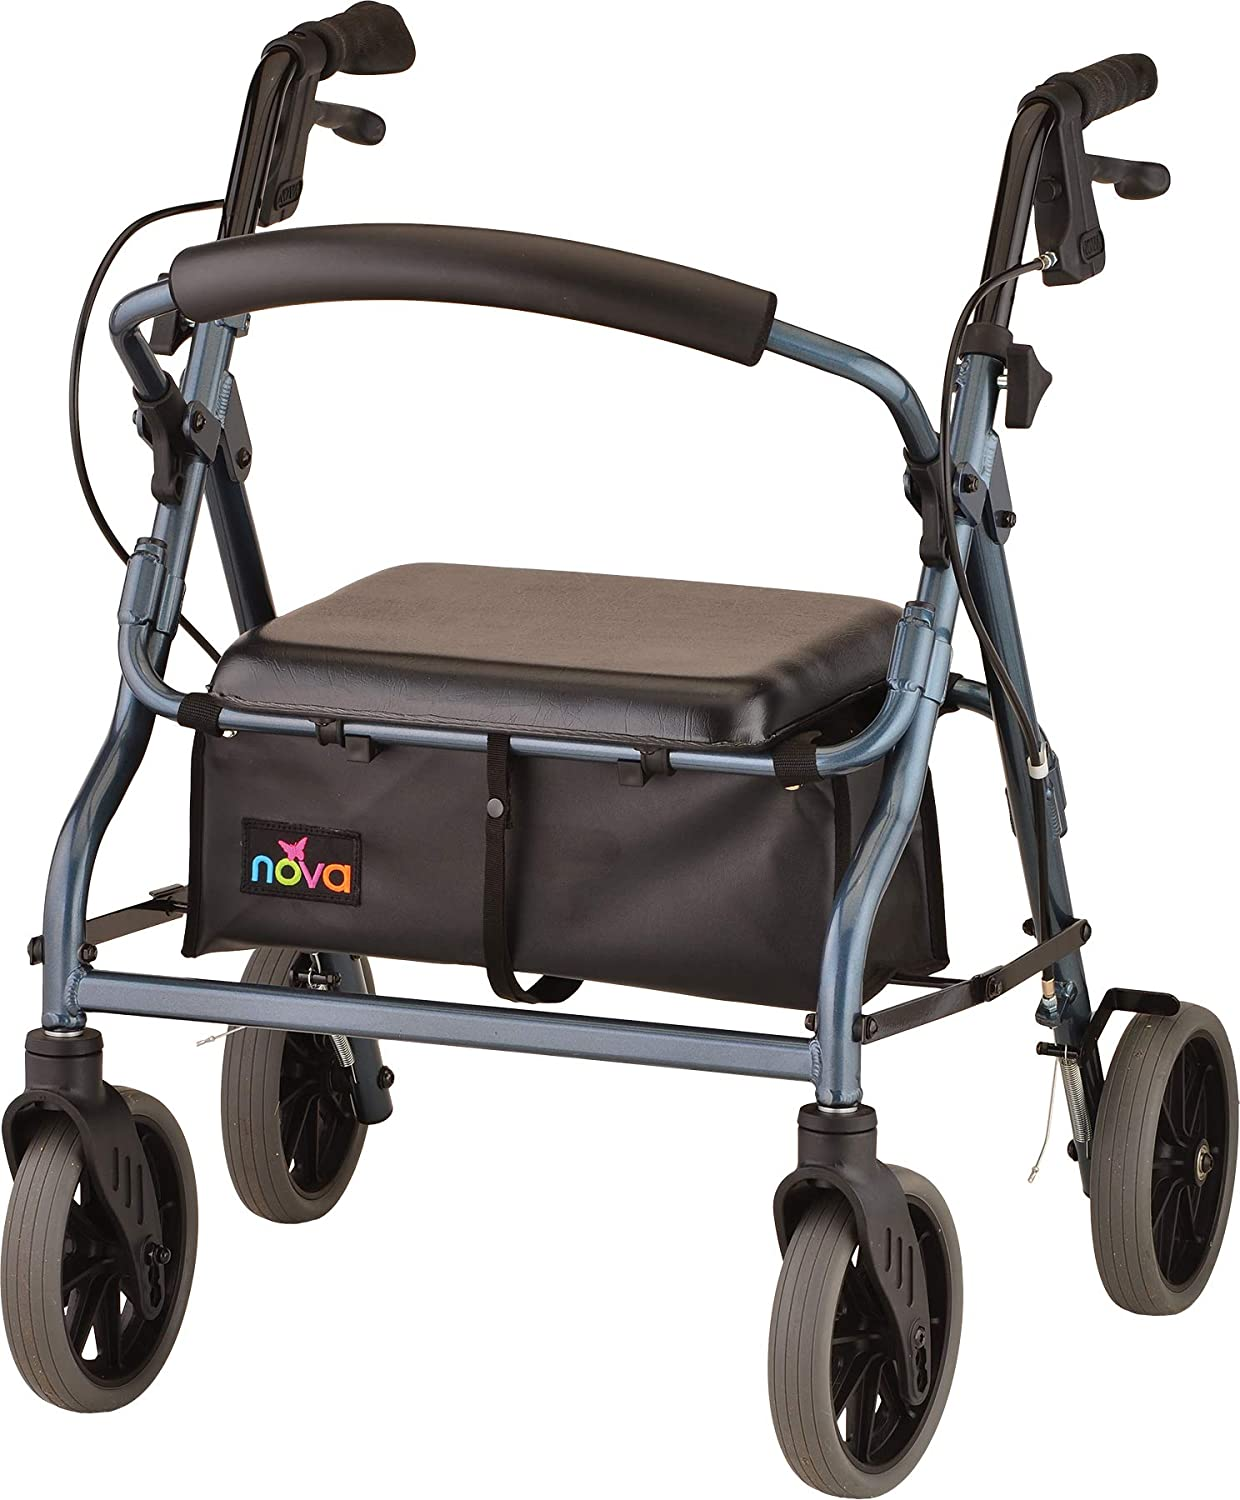 "NOVA Zoom Rollator Walker with 18"" Seat Height, Blue: Health & Personal Care"